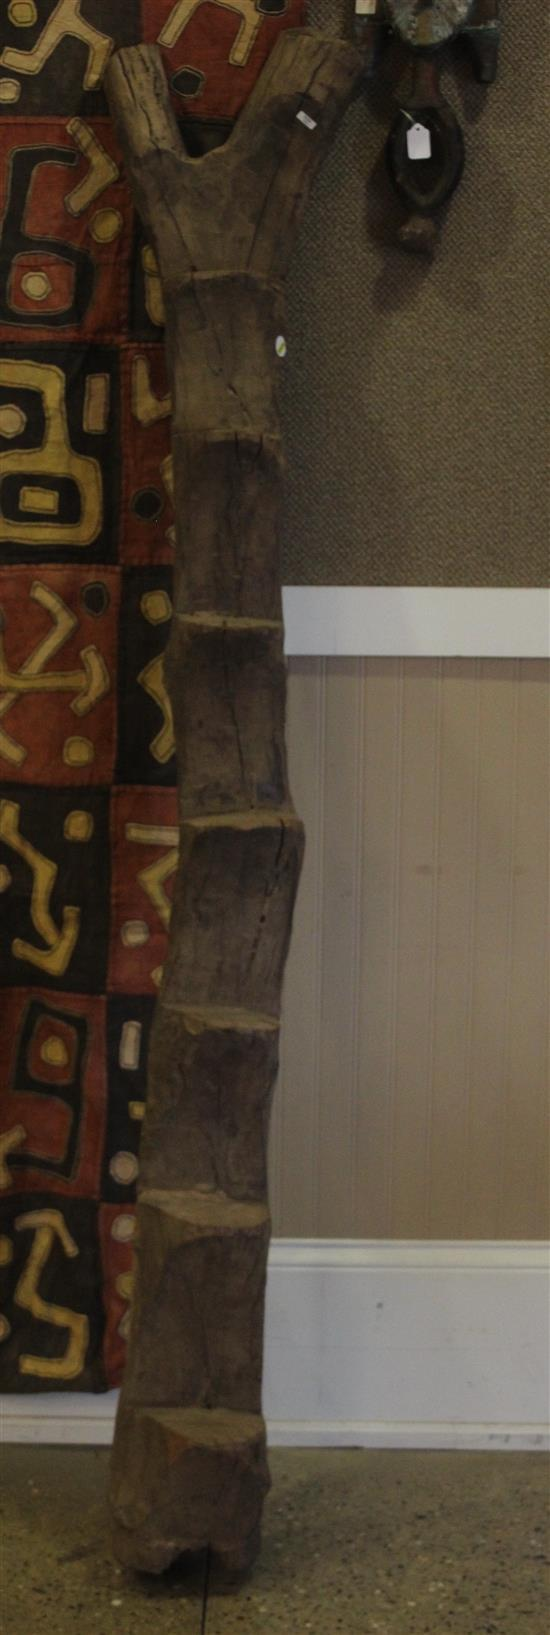 AFRICAN TRIBAL ART, HAND CARVED WOODEN DOGON LADDER, APPROX. 75